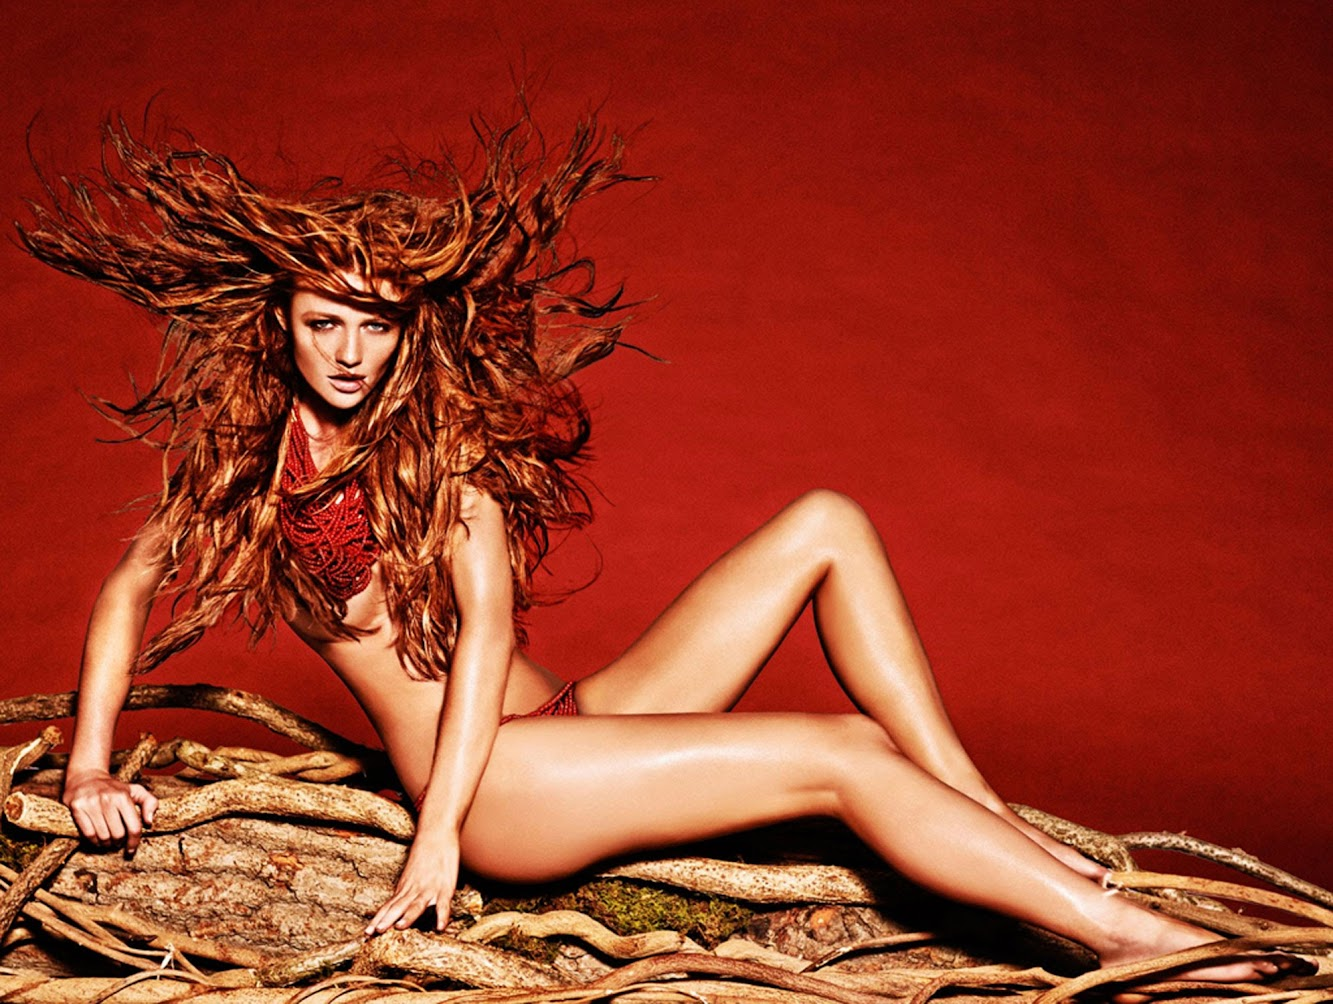 Sexiest Coconut Water Ad Campaign Ever — The #AMAZONpower Tribal Looks of Adriana Lima, Emanuela de Paula, Cintia Dicker